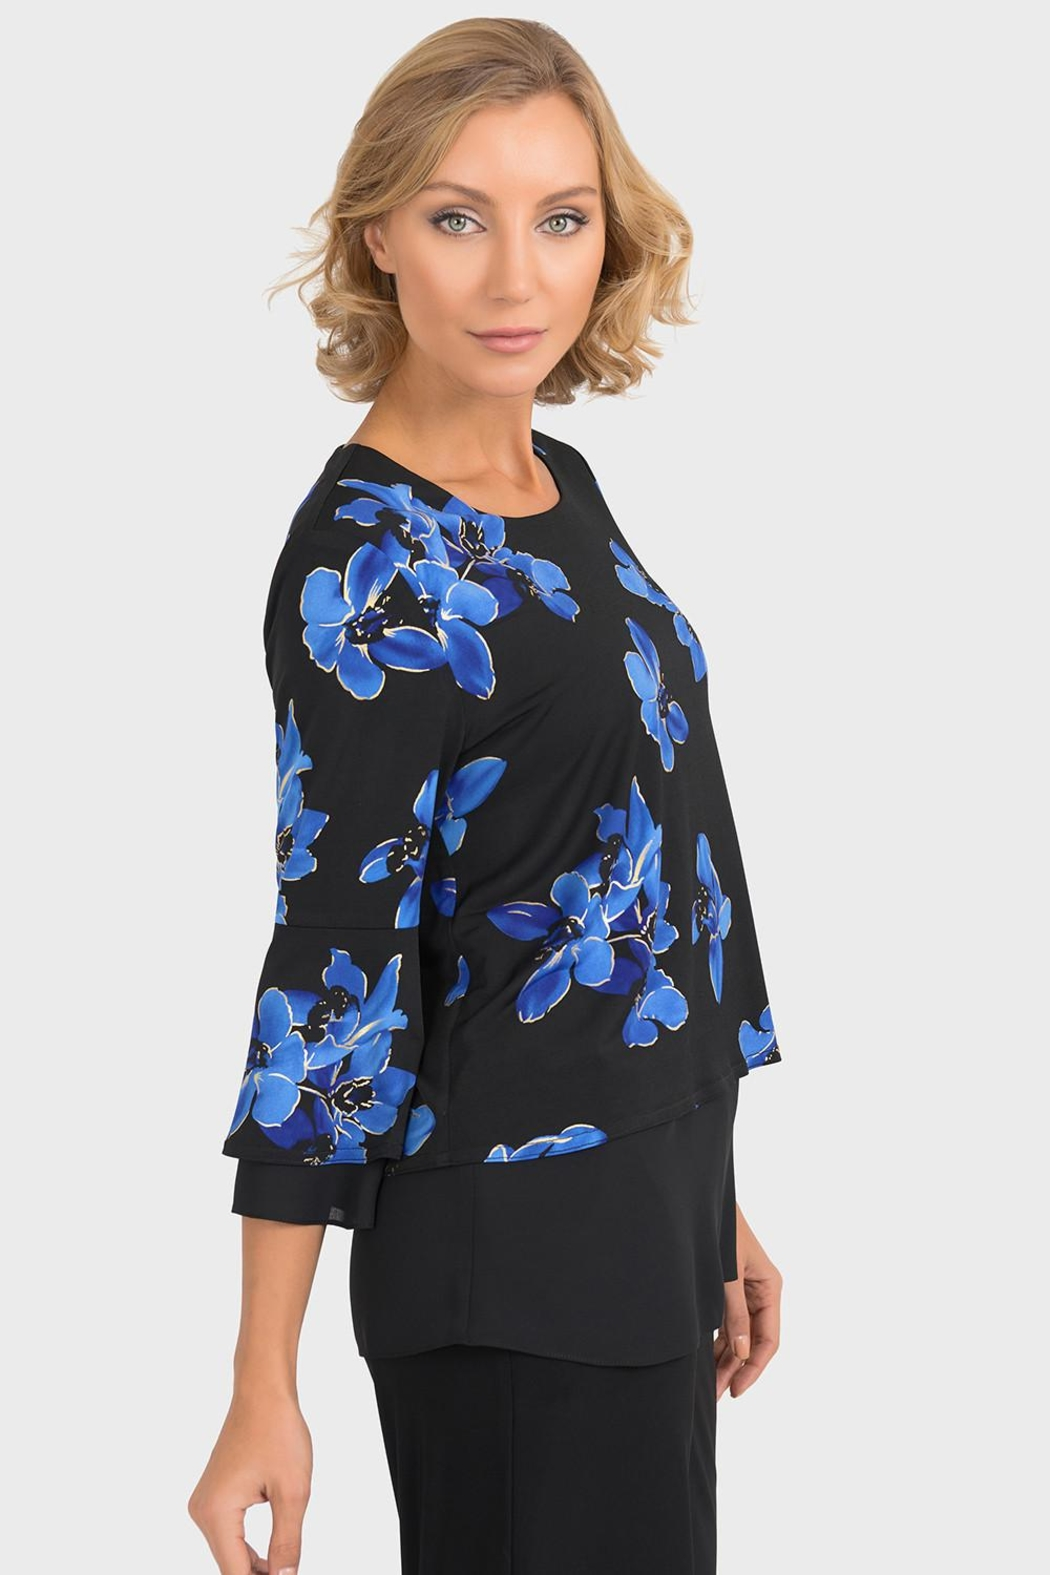 Joseph Ribkoff Veronica Floral Top - Front Full Image